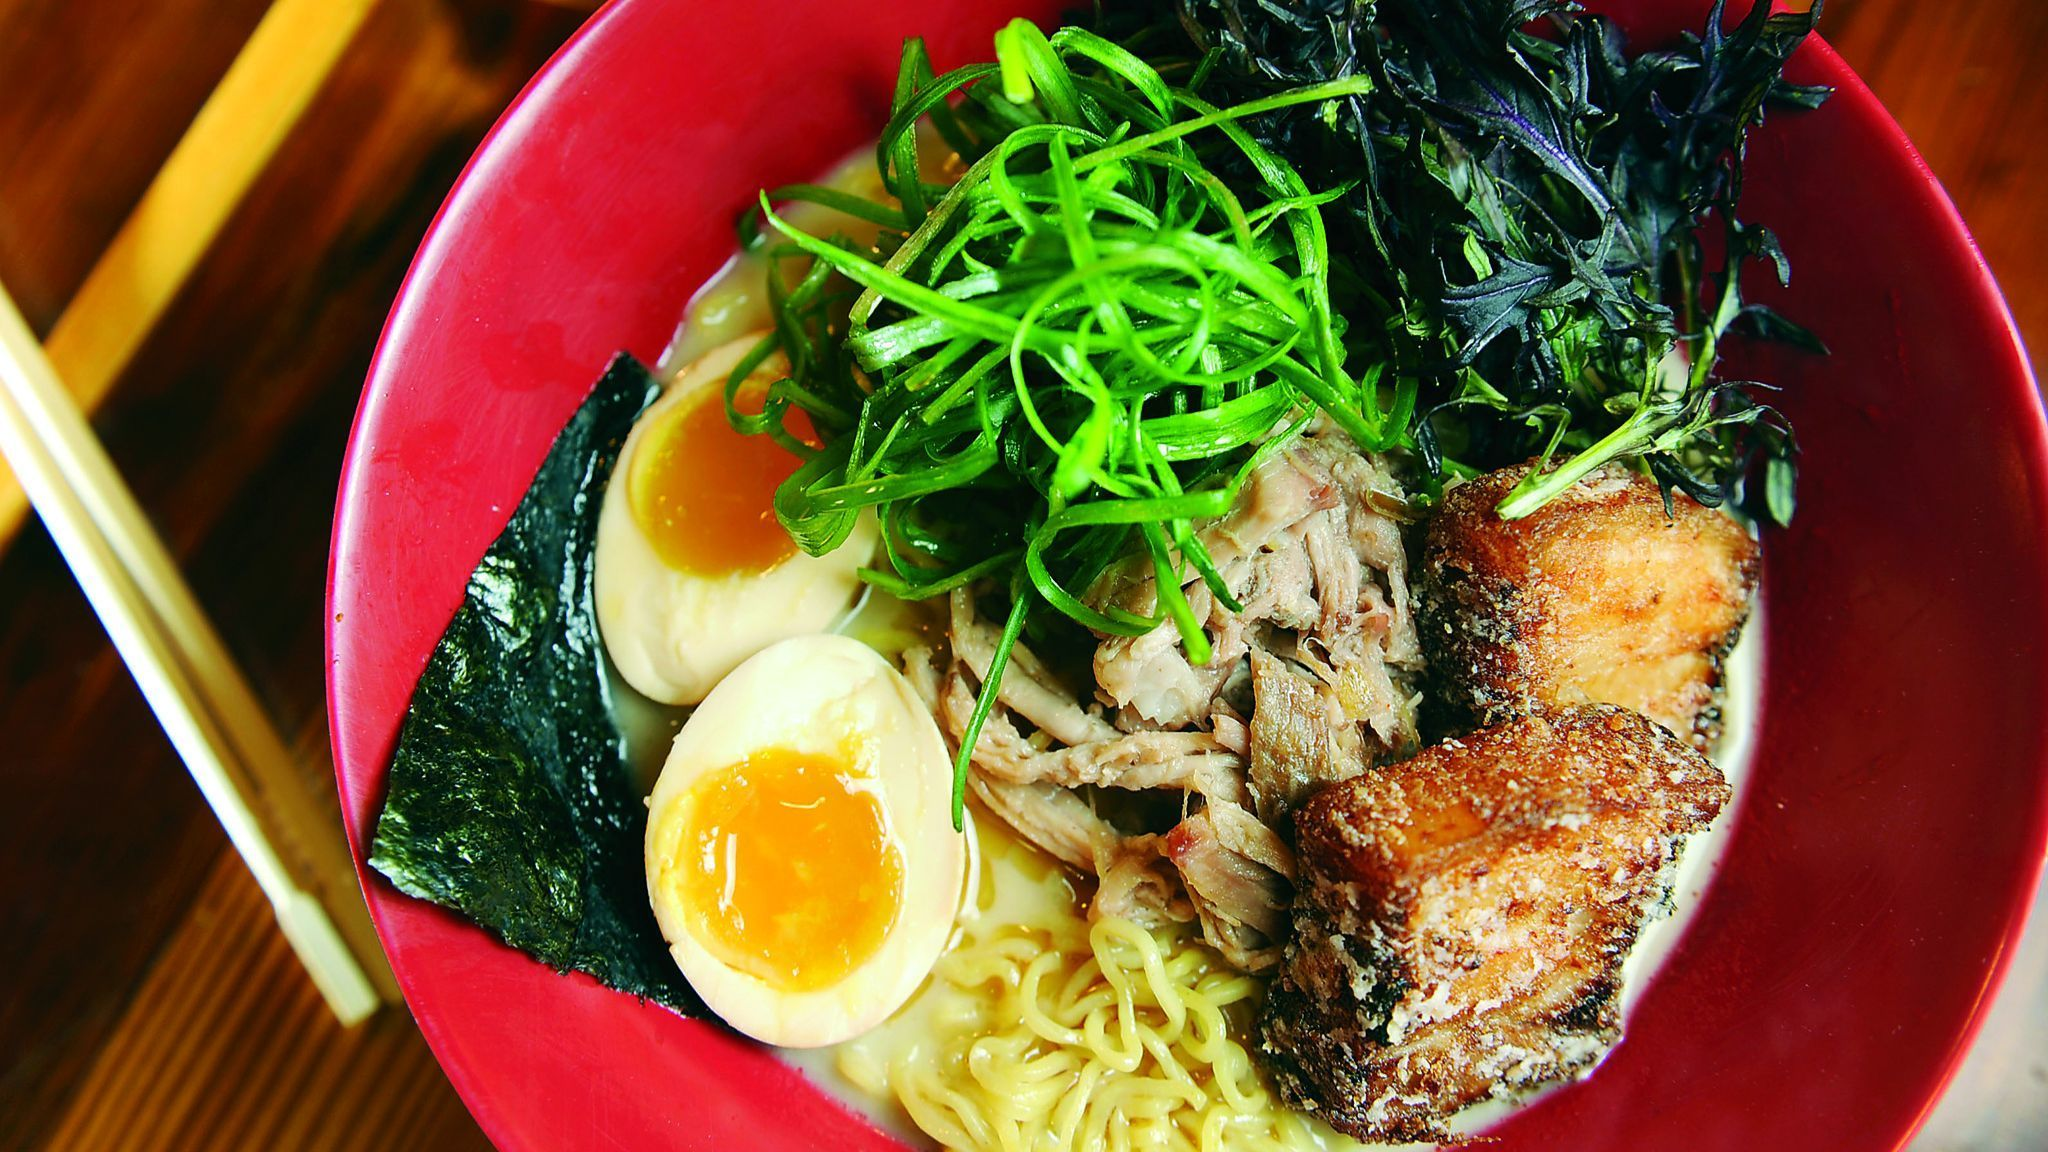 03/31/15 -- Baltimore, MD -- Tonkotsu ramen at Ejji Ramen includes pork broth with char su pulled